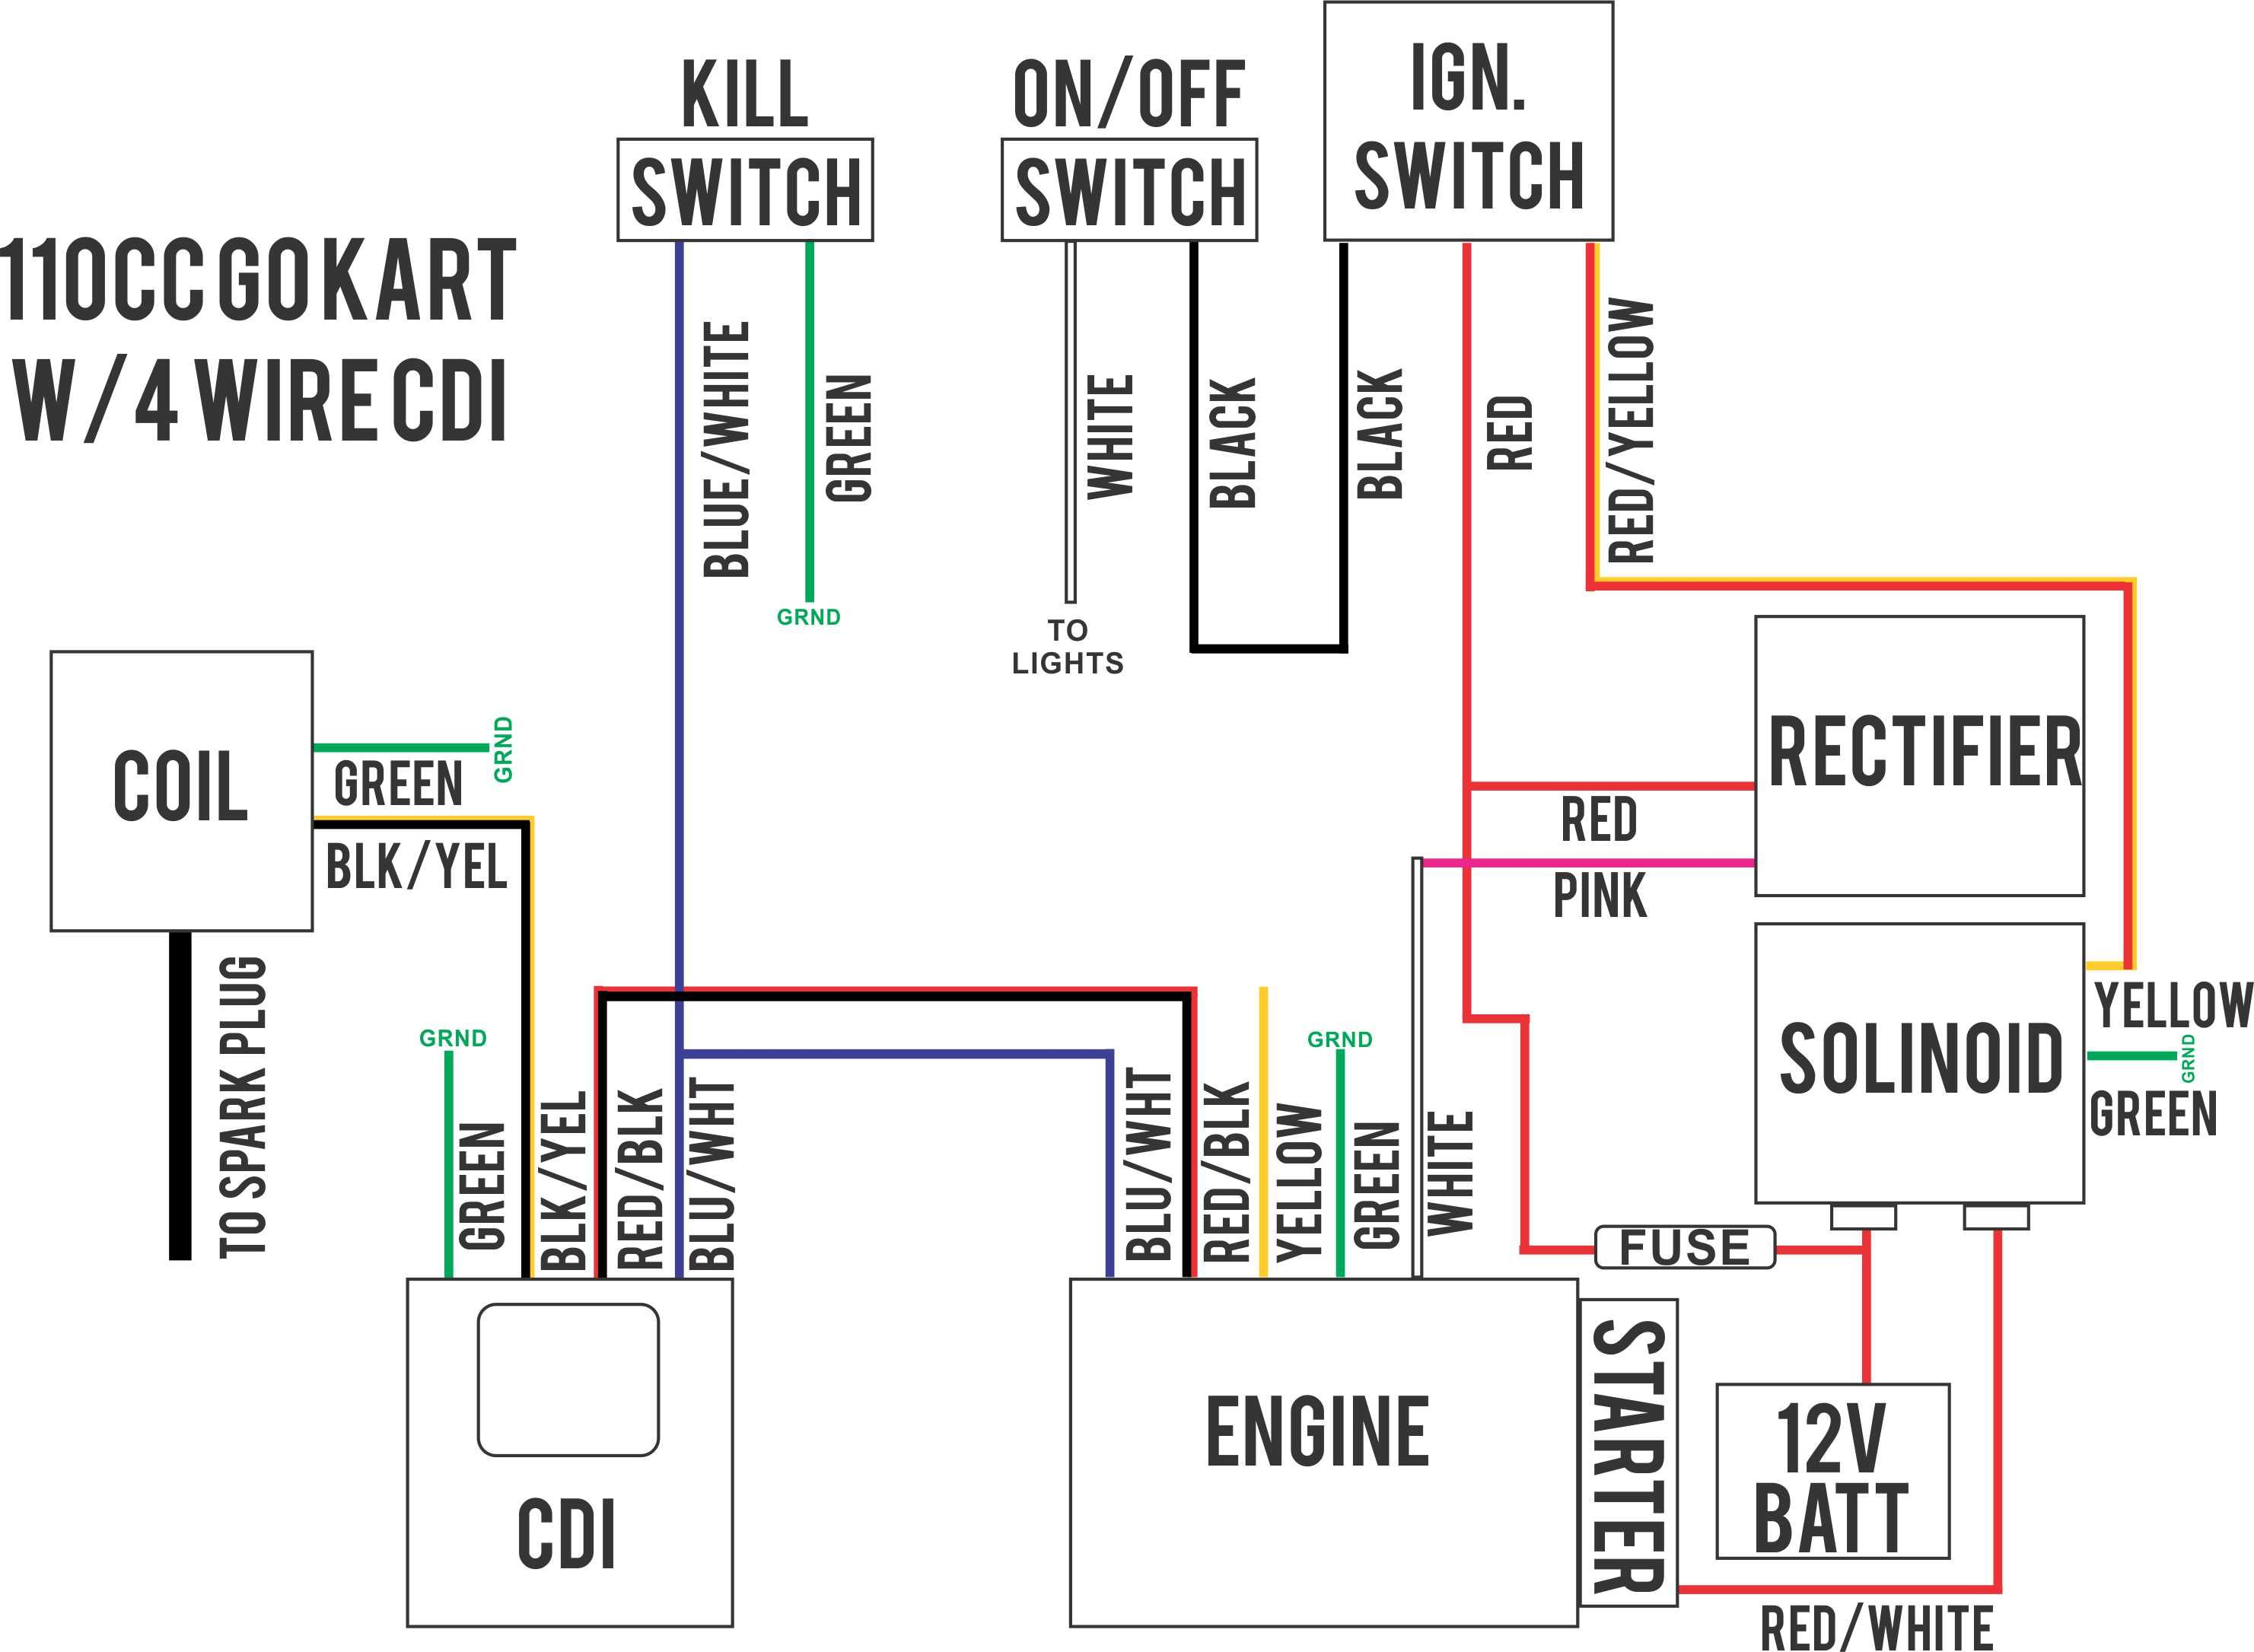 15 Simple Wiring Diagram Of Motorcycle Honda Xrm 125 Technique Https Bacamajalah Com 15 Simple Wiri Electrical Wiring Diagram Motorcycle Wiring Boat Wiring